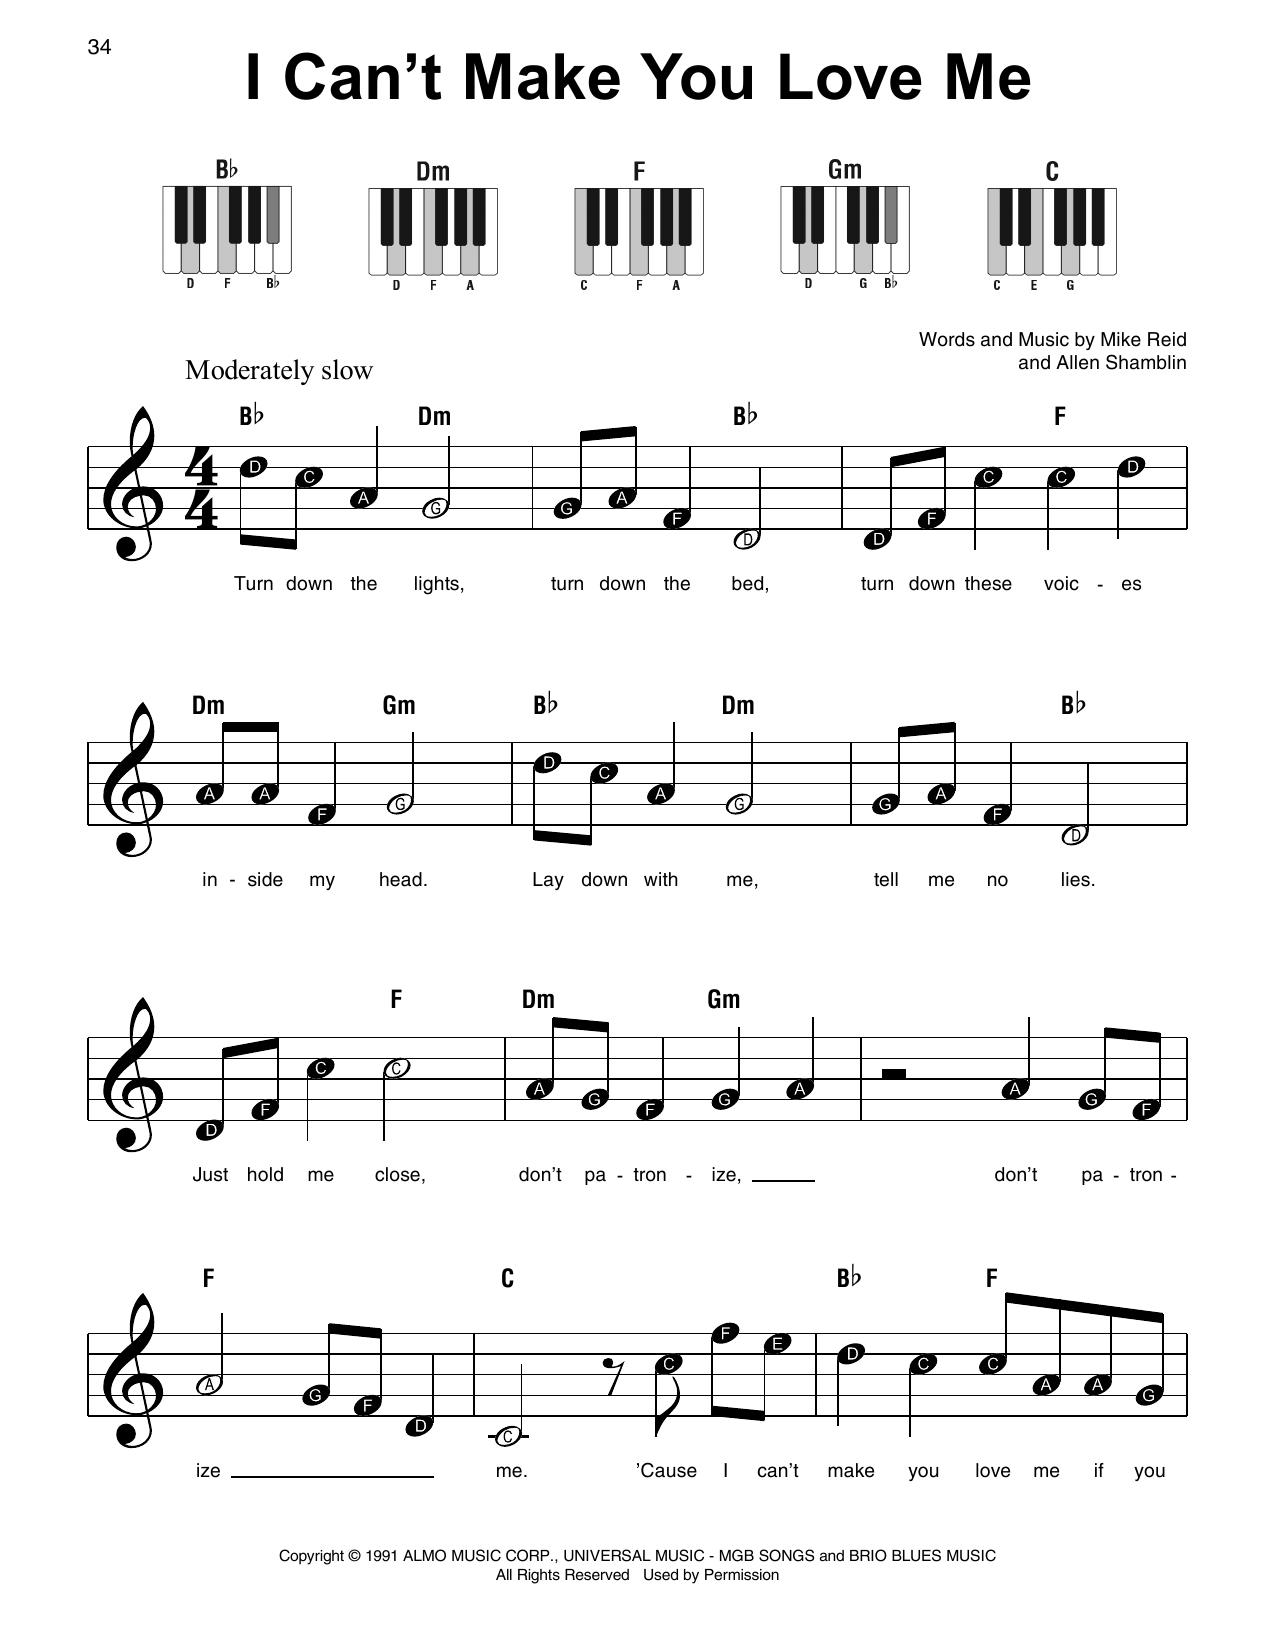 I Can't Make You Love Me (Super Easy Piano) - Print Sheet Music Now